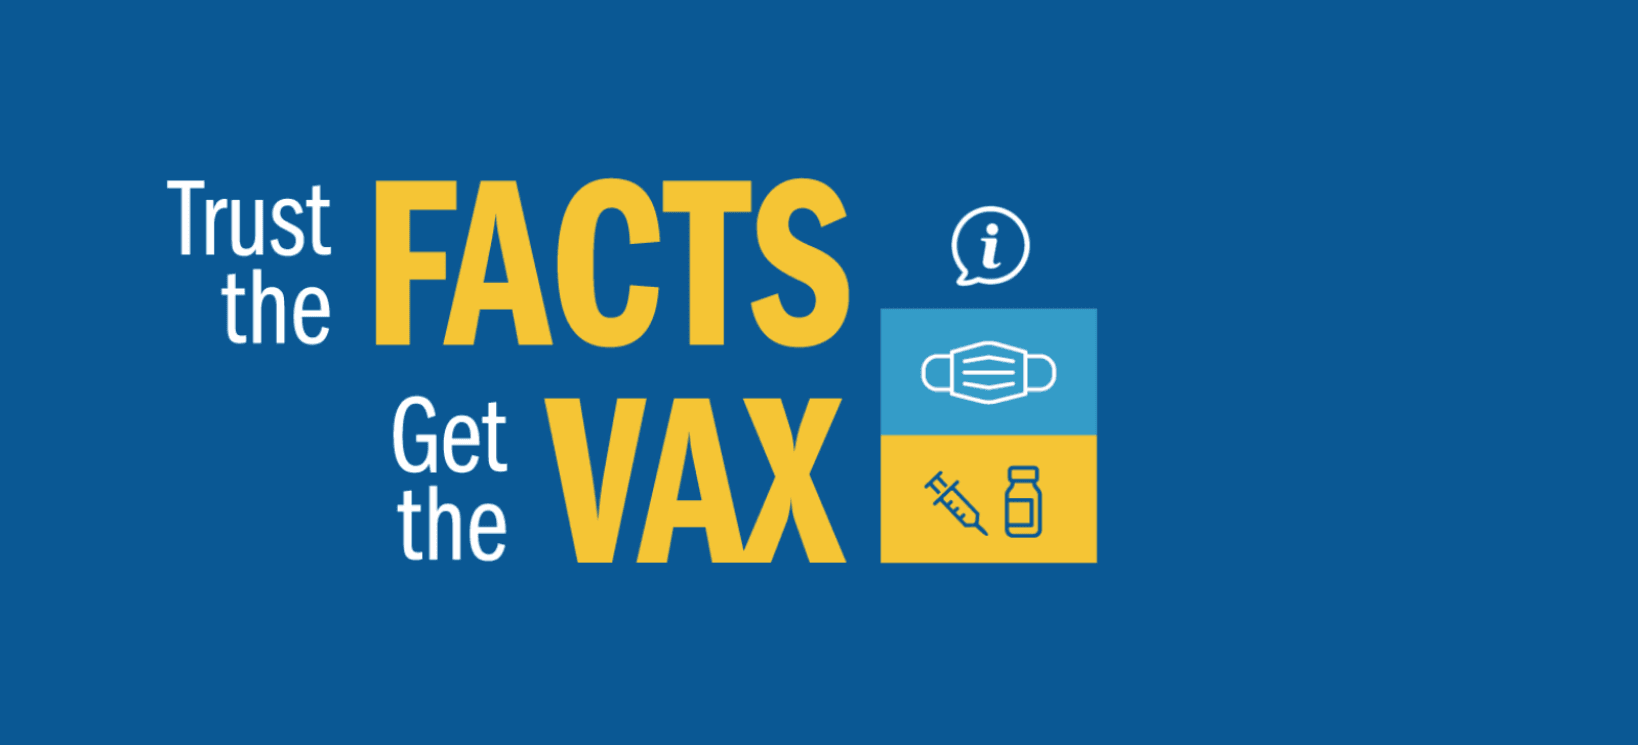 Blue background Text Trust the facts get the vax graphic